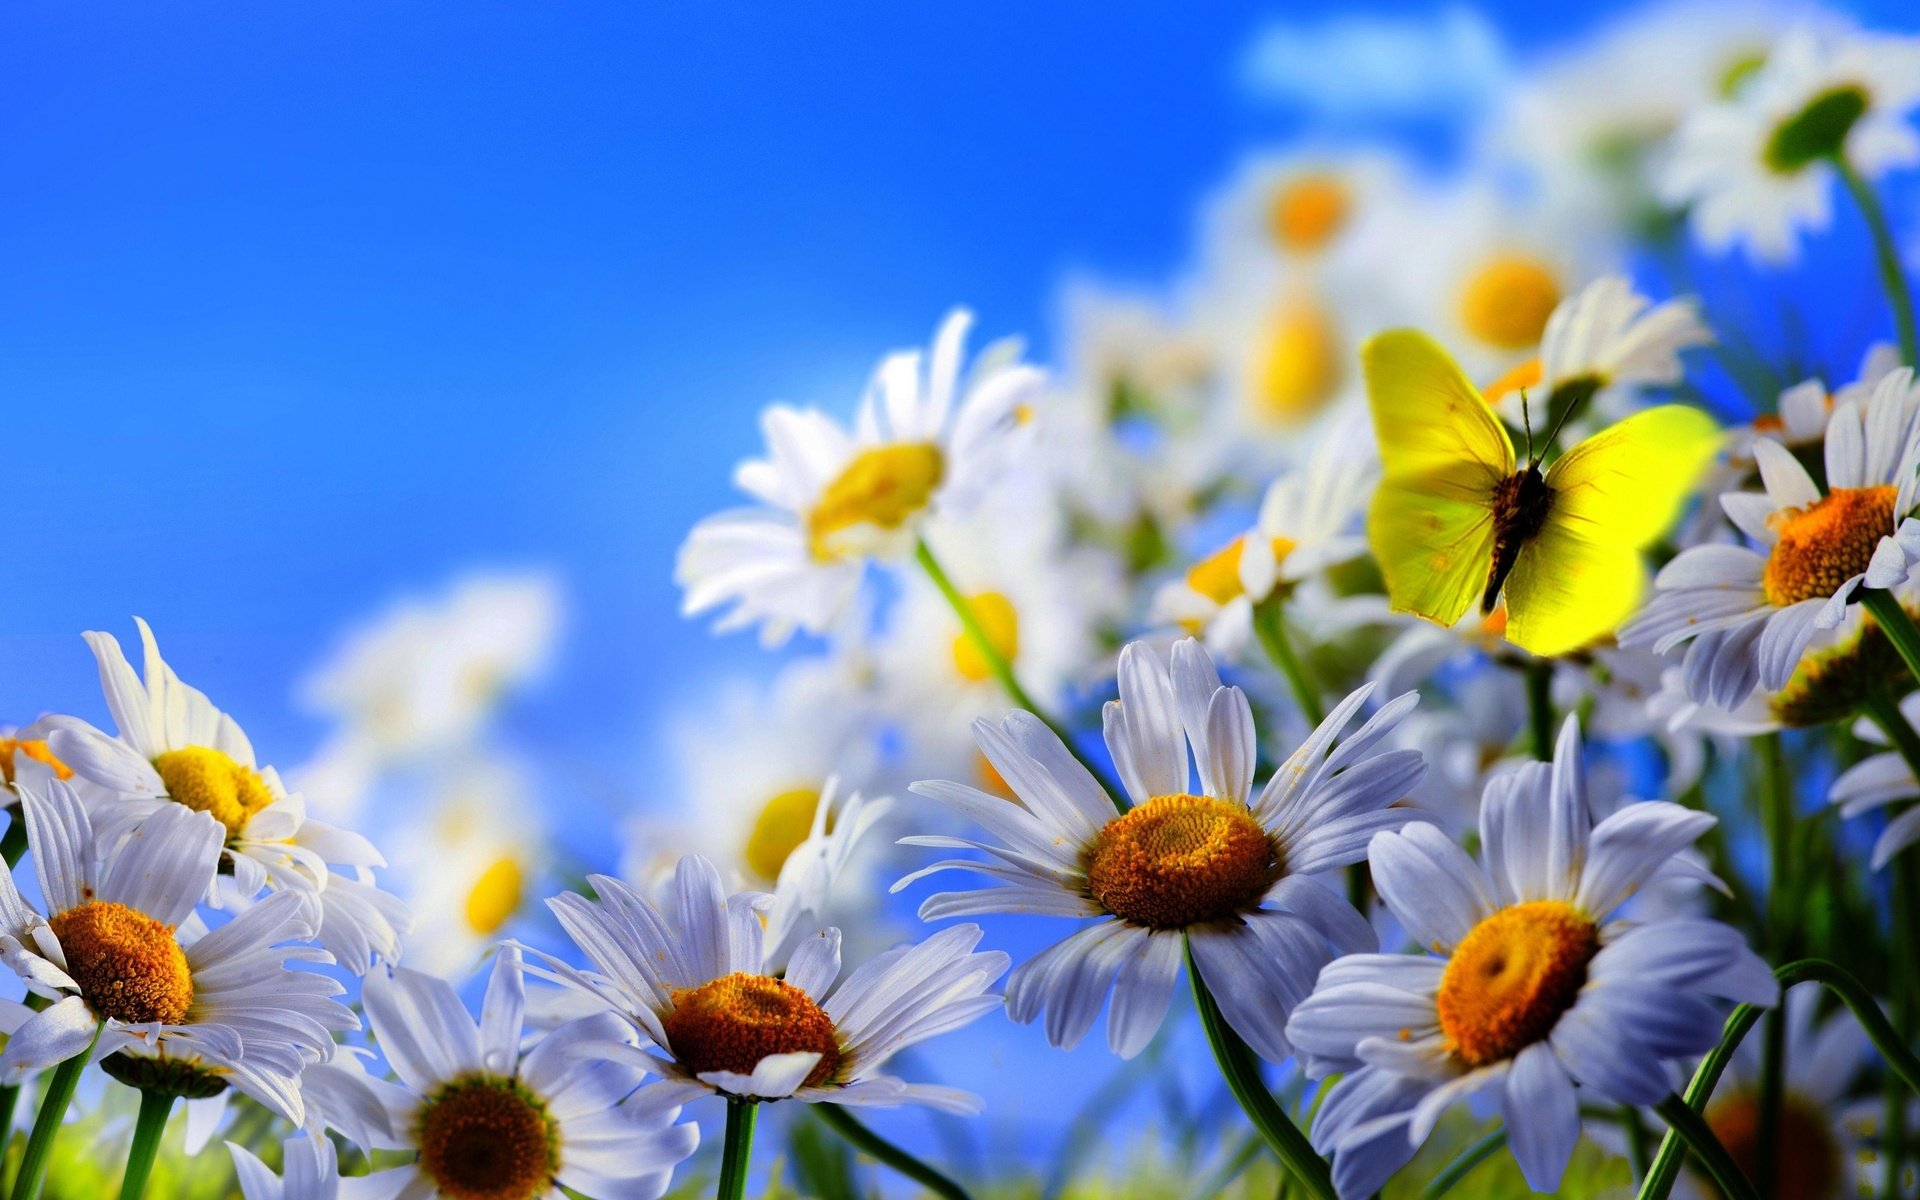 47464 download wallpaper Plants, Flowers, Camomile screensavers and pictures for free